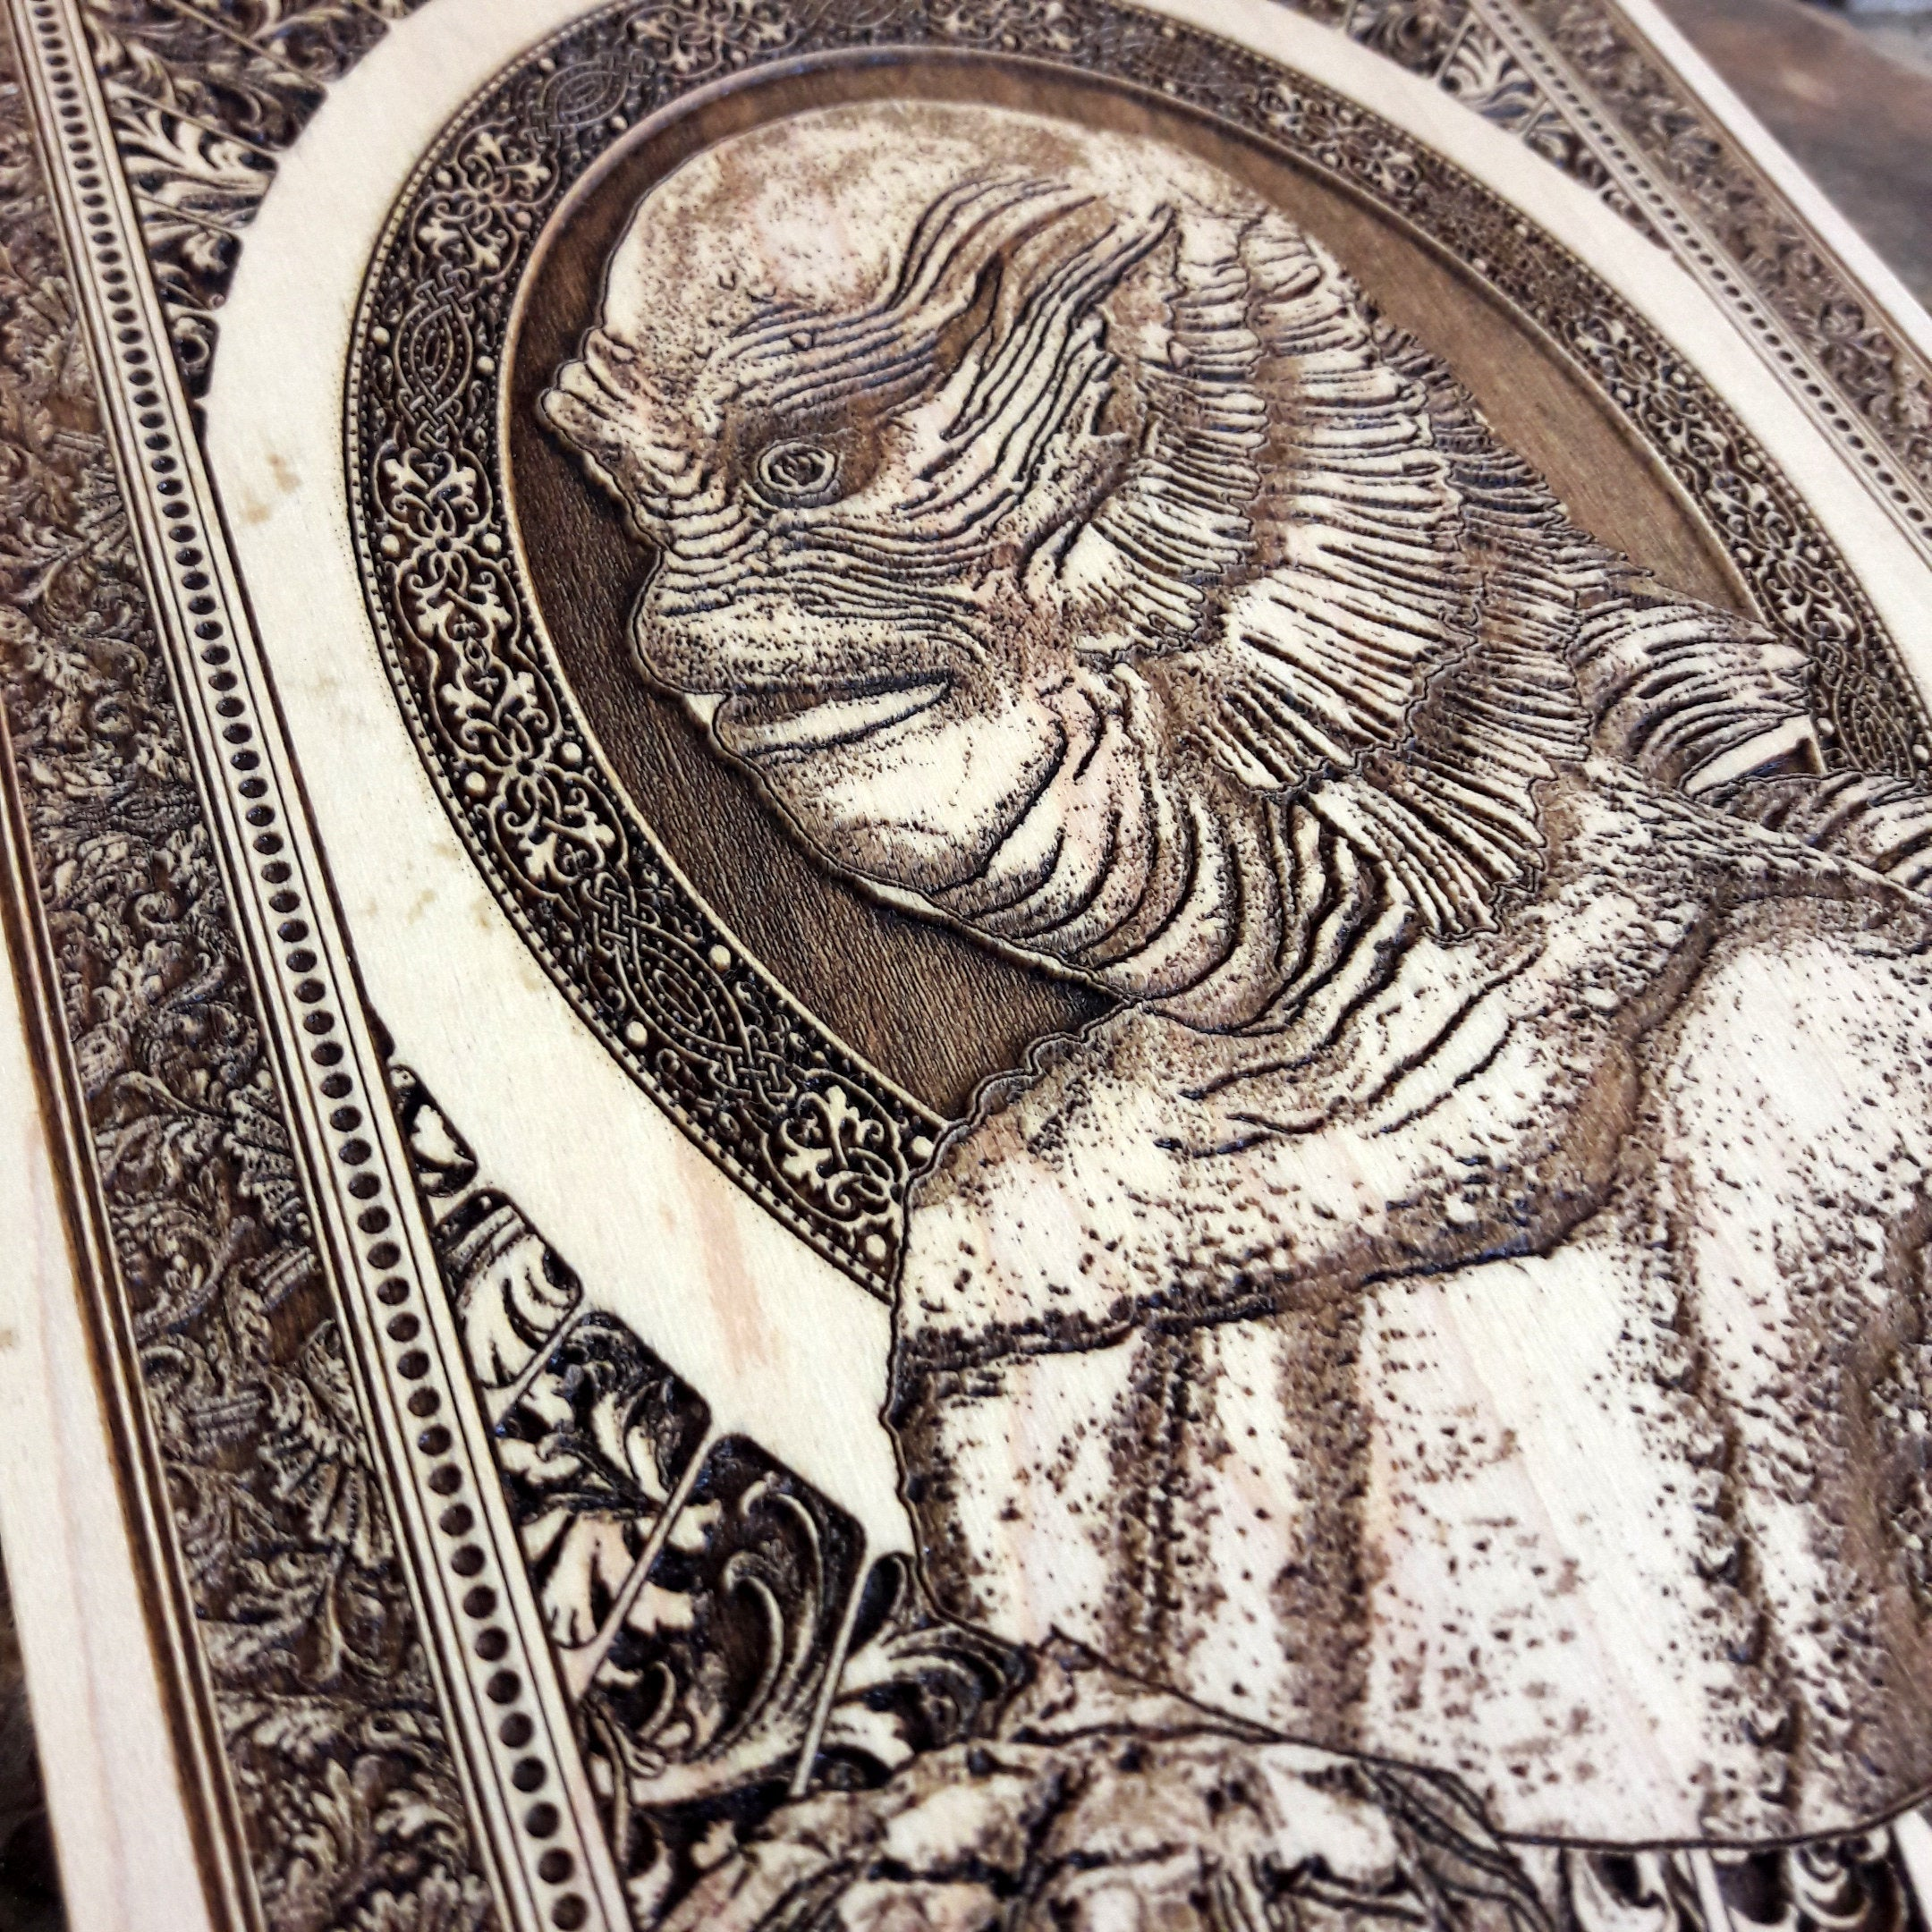 Creature from the Black Lagoon Mini Woodcut